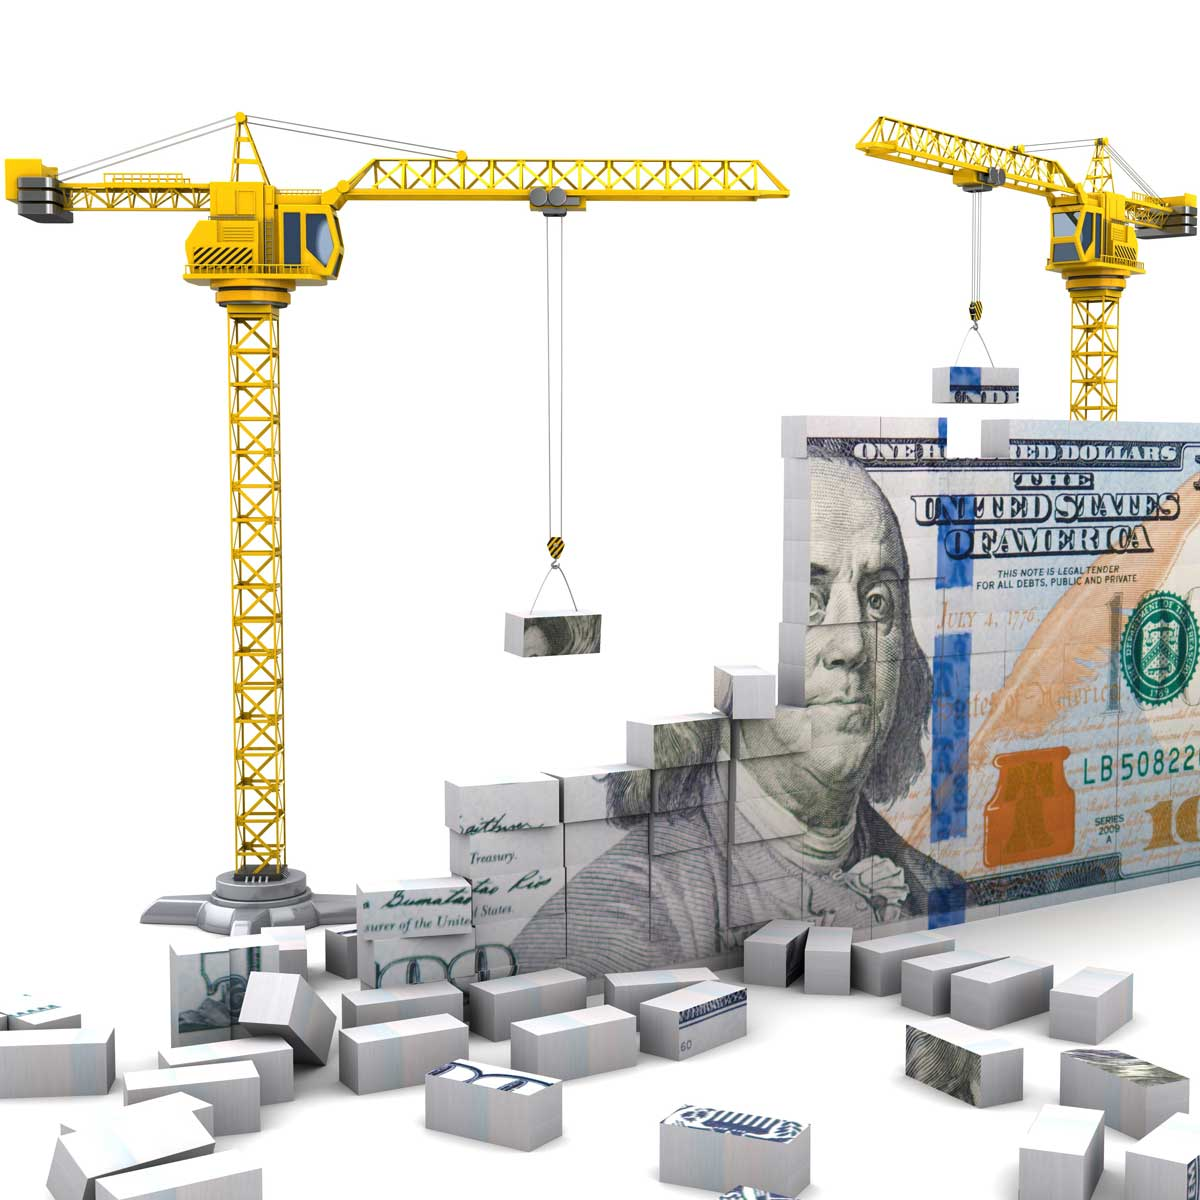 an image of construction building tools putting together a 100 dollar bill by stacking blocks of the bill together